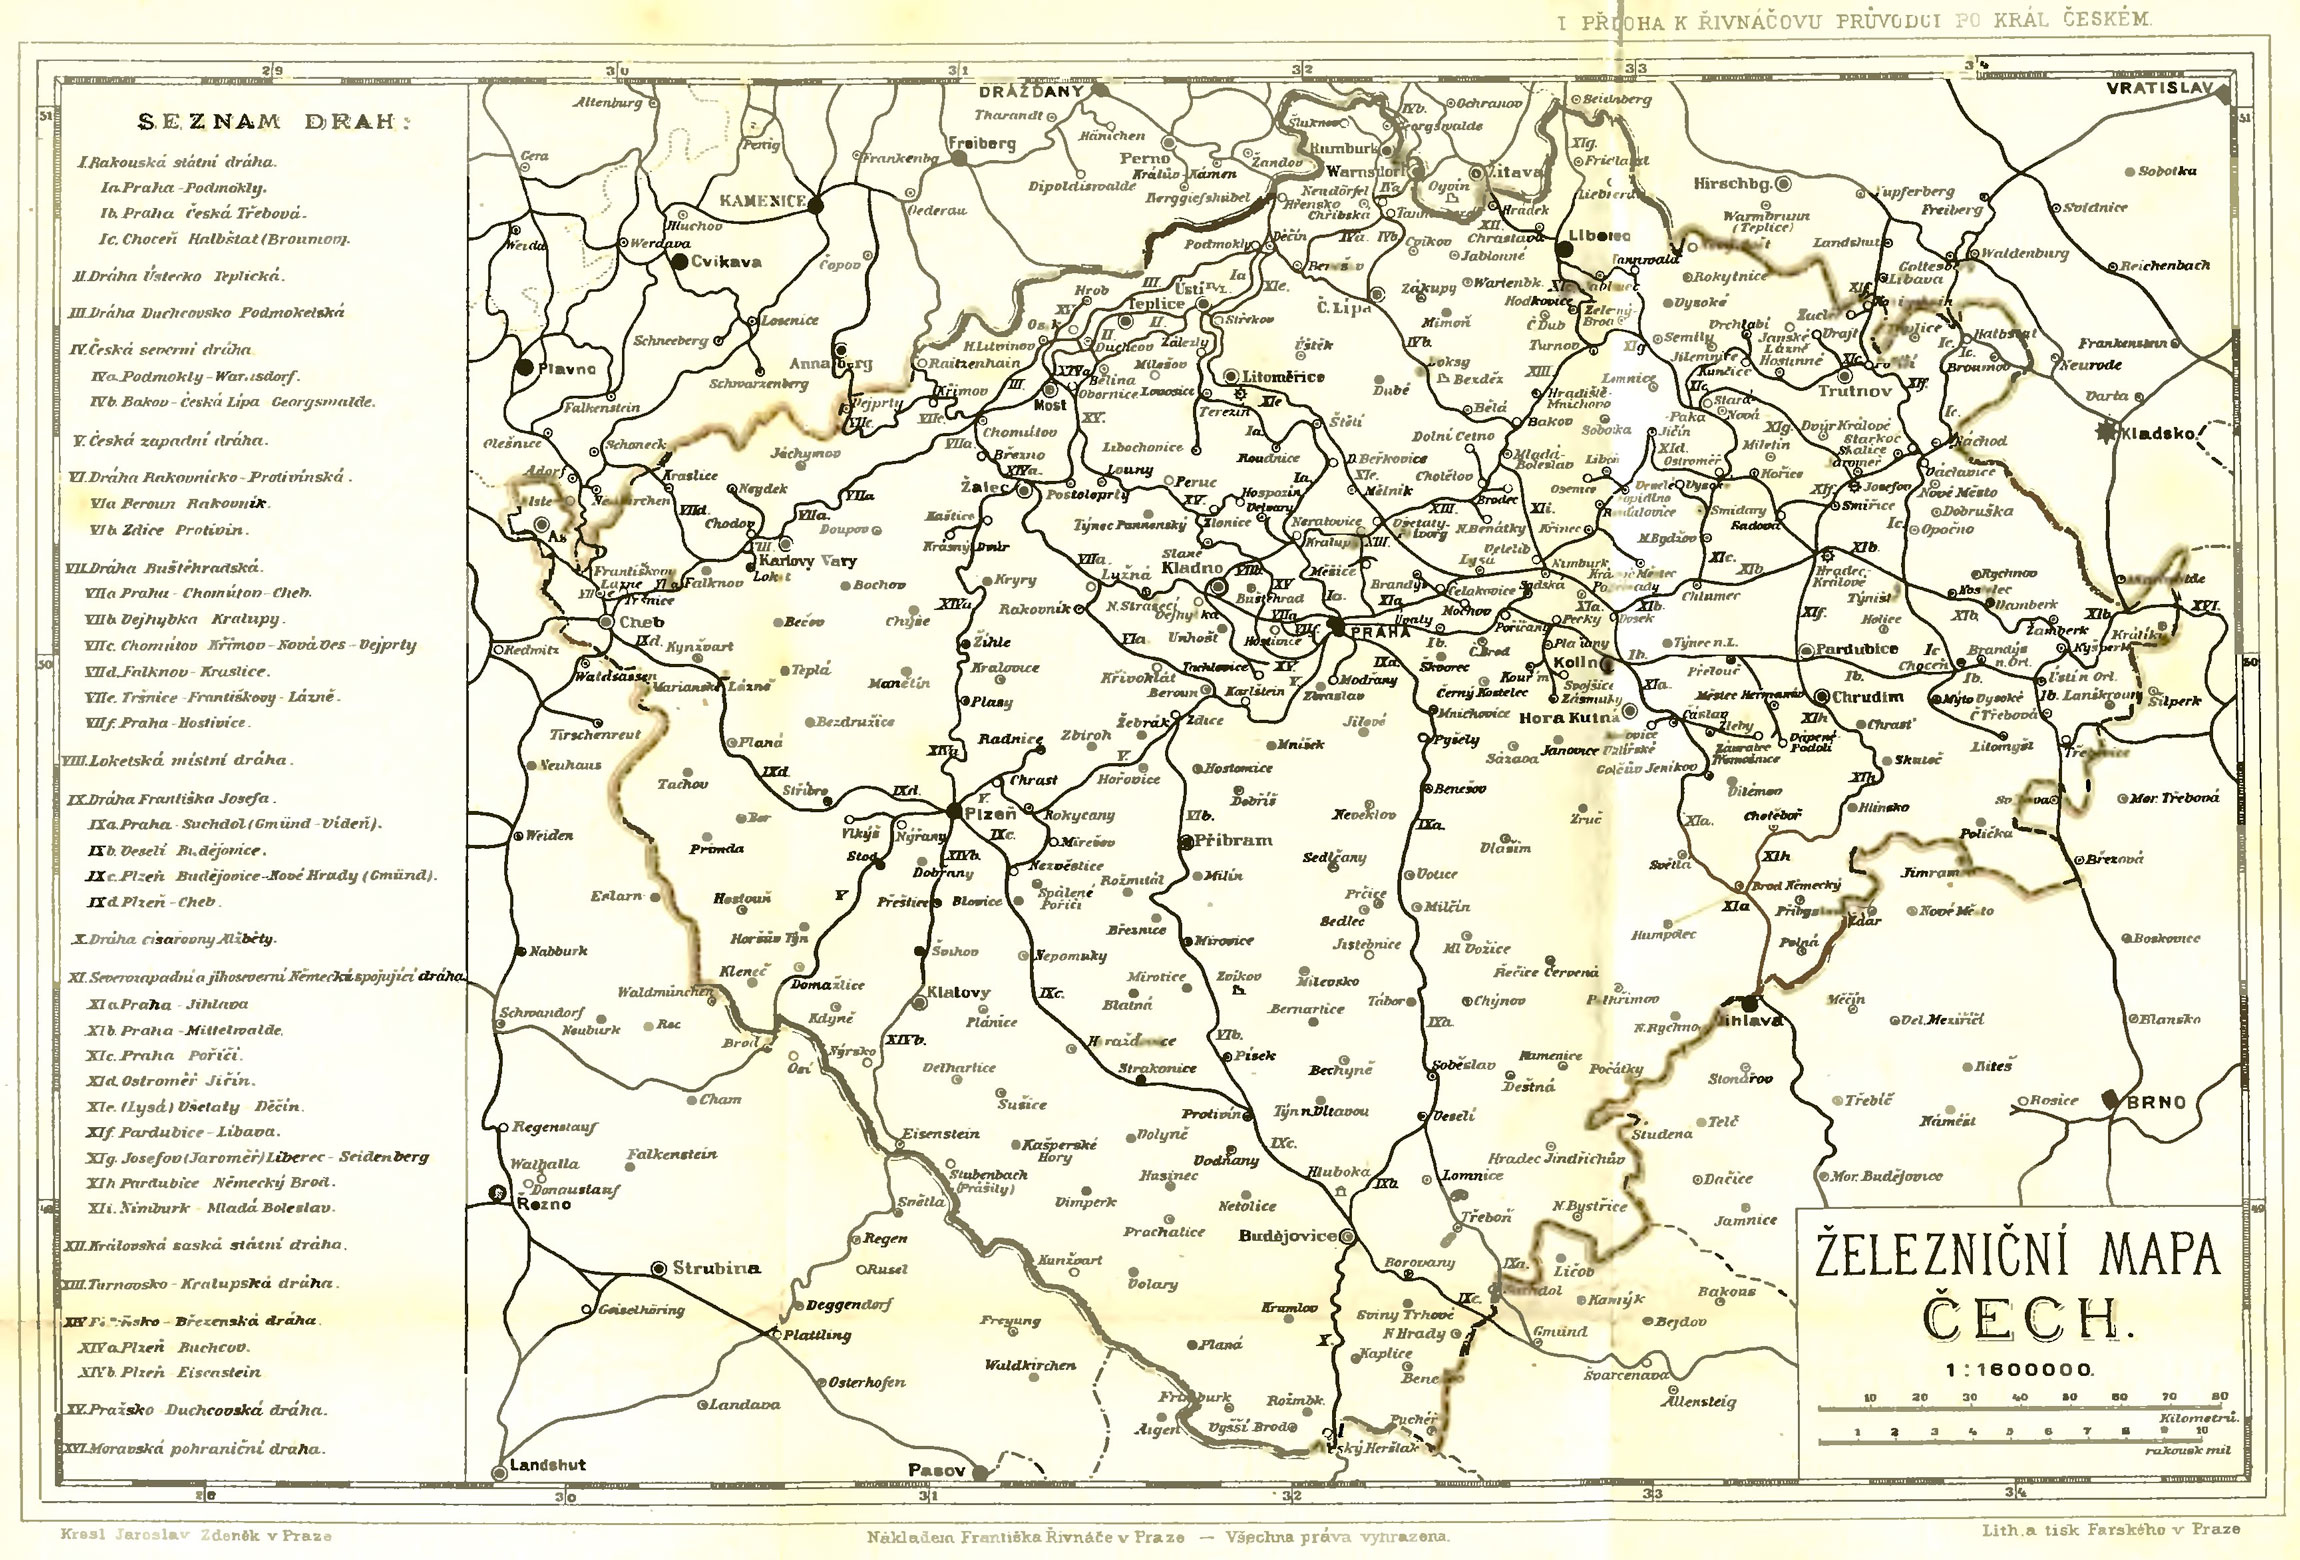 Railway Map of Bohemia (1883) - Philatelic Database on map of africa, map of the us, map of greece, map of senegal, map of the mediterranean, map of tangier, map of atlantic ocean, map of gibraltar, map of fez, map of world, map of romania, map of marrakech, map of nicaragua, map of austria, map of mali, map of algeria, map of honduras, map of saint martin, map of western sahara, map of mongolia,